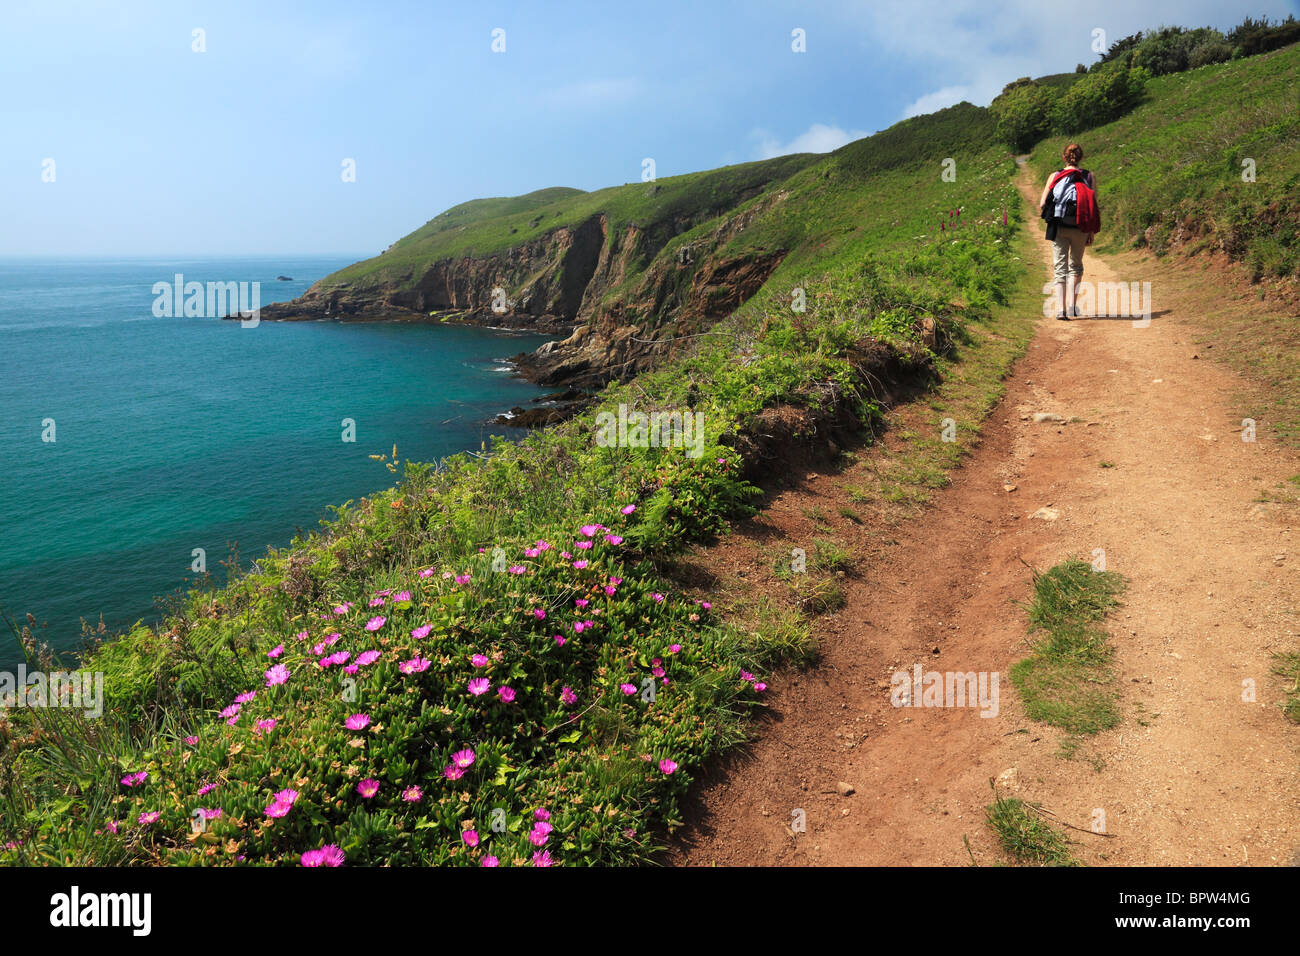 A woman hiking along the beautiful coastal path of North Herm in the Channel Islands of England - Stock Image